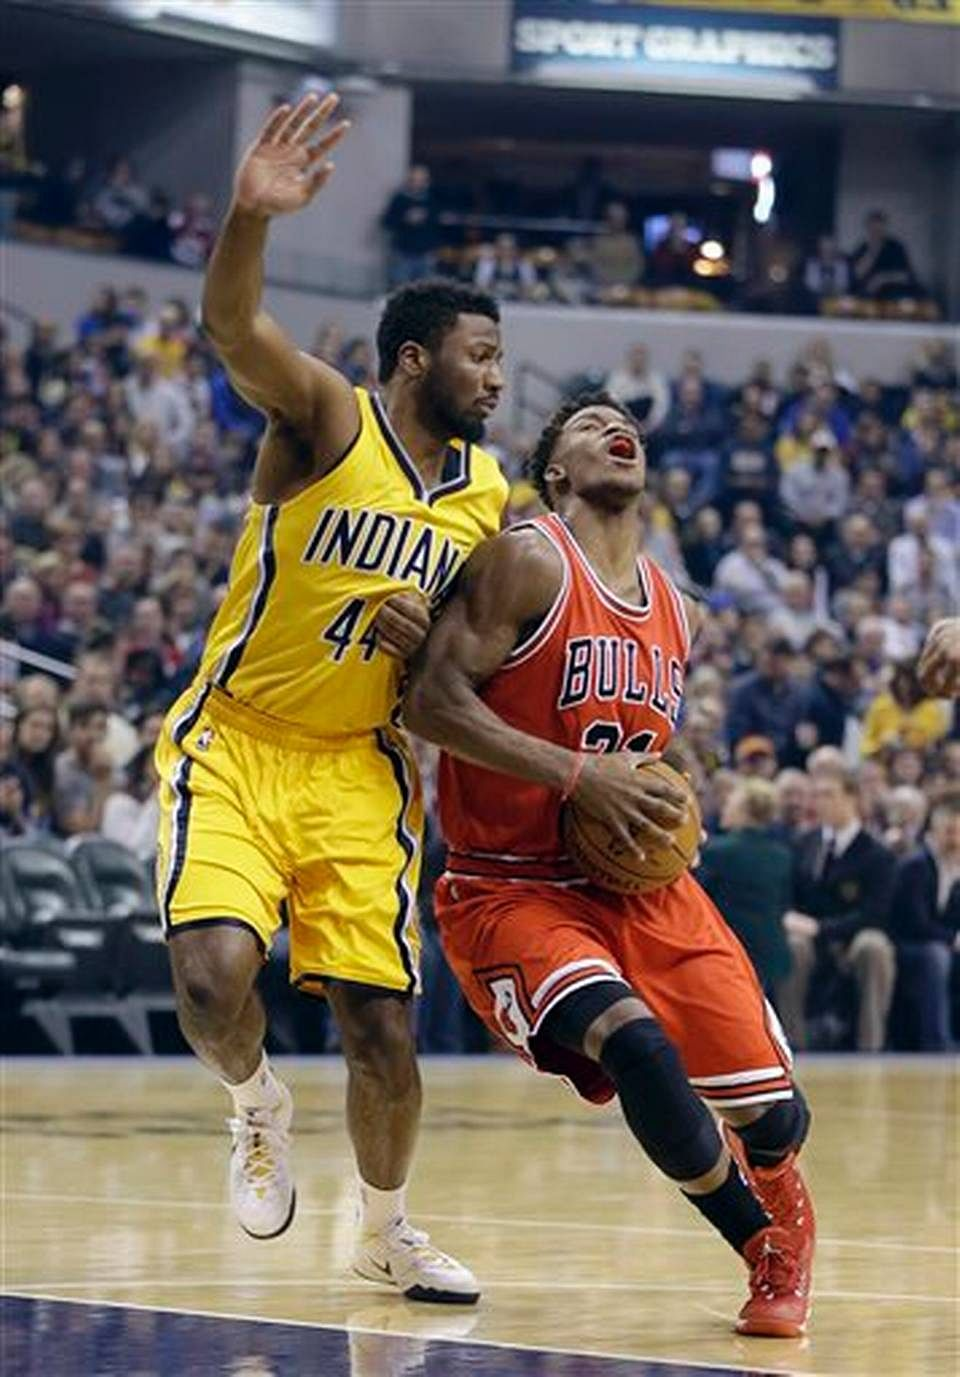 Chicago Bulls beat Indiana Pacers in a close contest